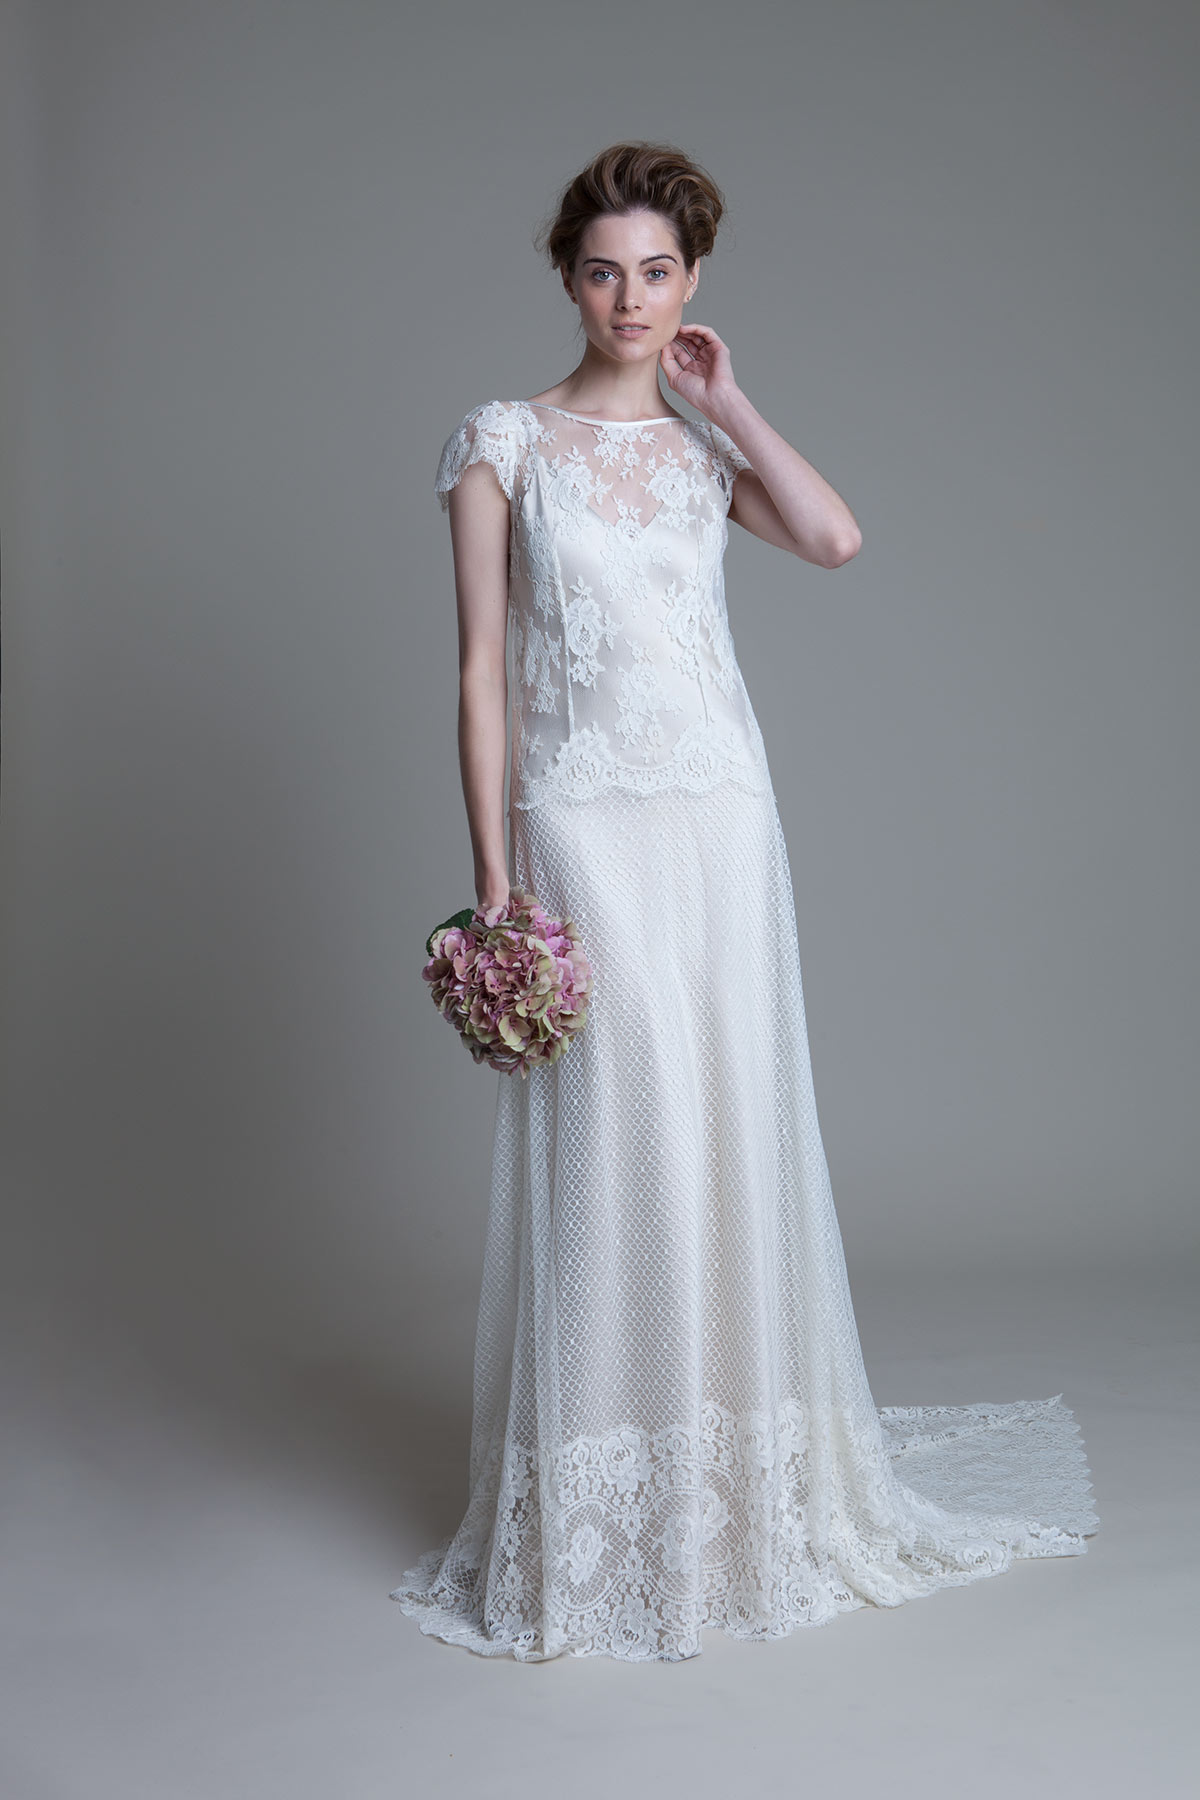 Iris Honeycomb with lace cap sleeve and blush Iris Slip wedding dress by Halfpenny London